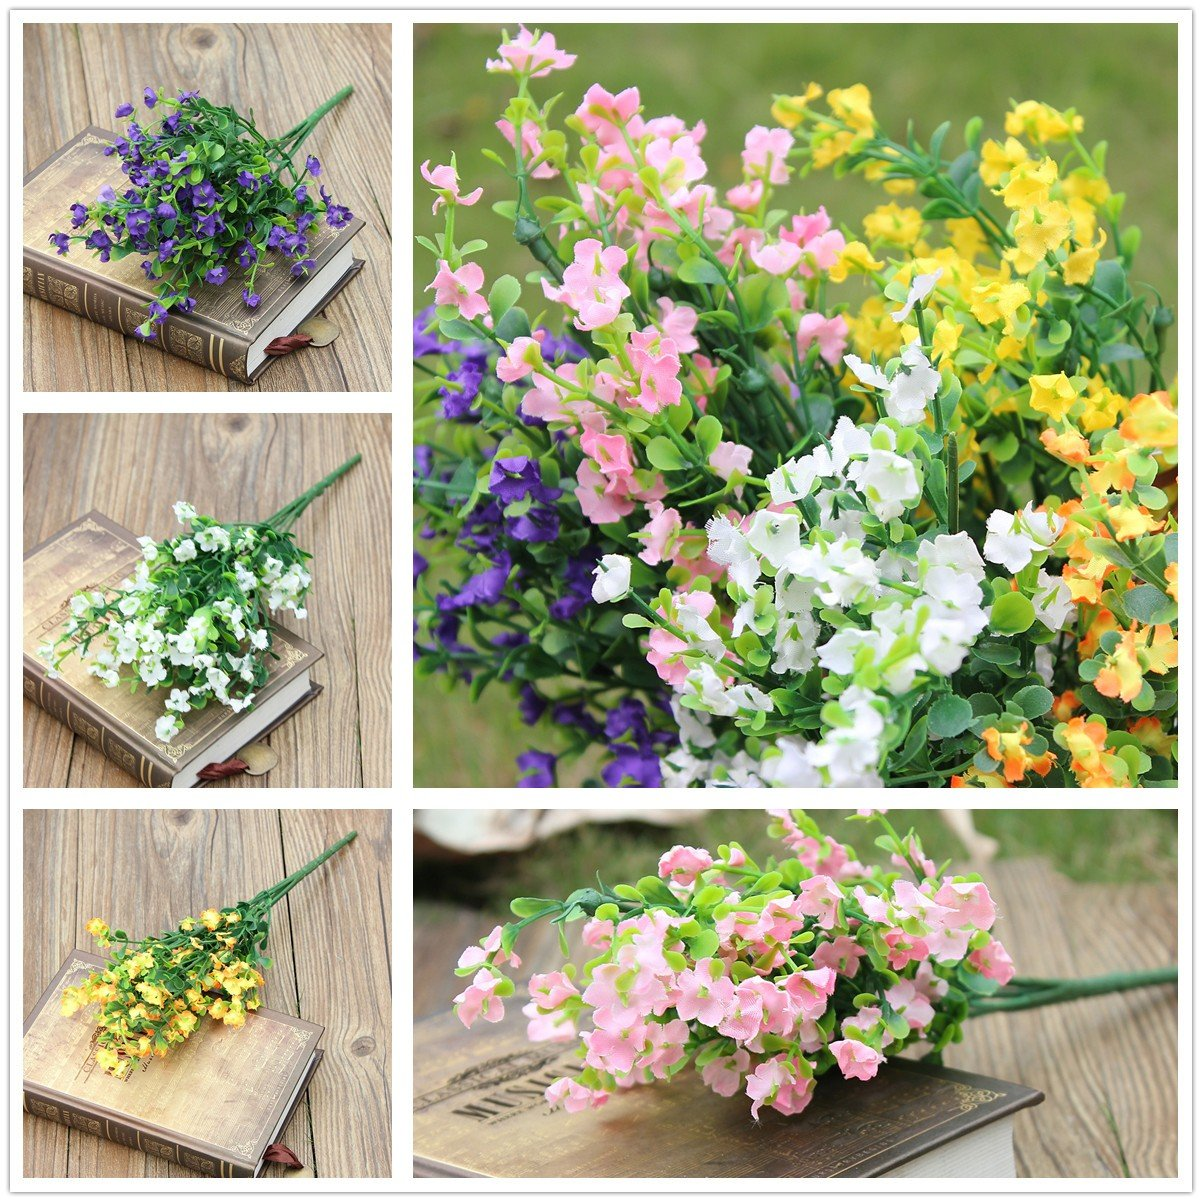 Artificial Flower Gypsophila 1 Bouquet 6 Branches Wedding Party Home Decorations